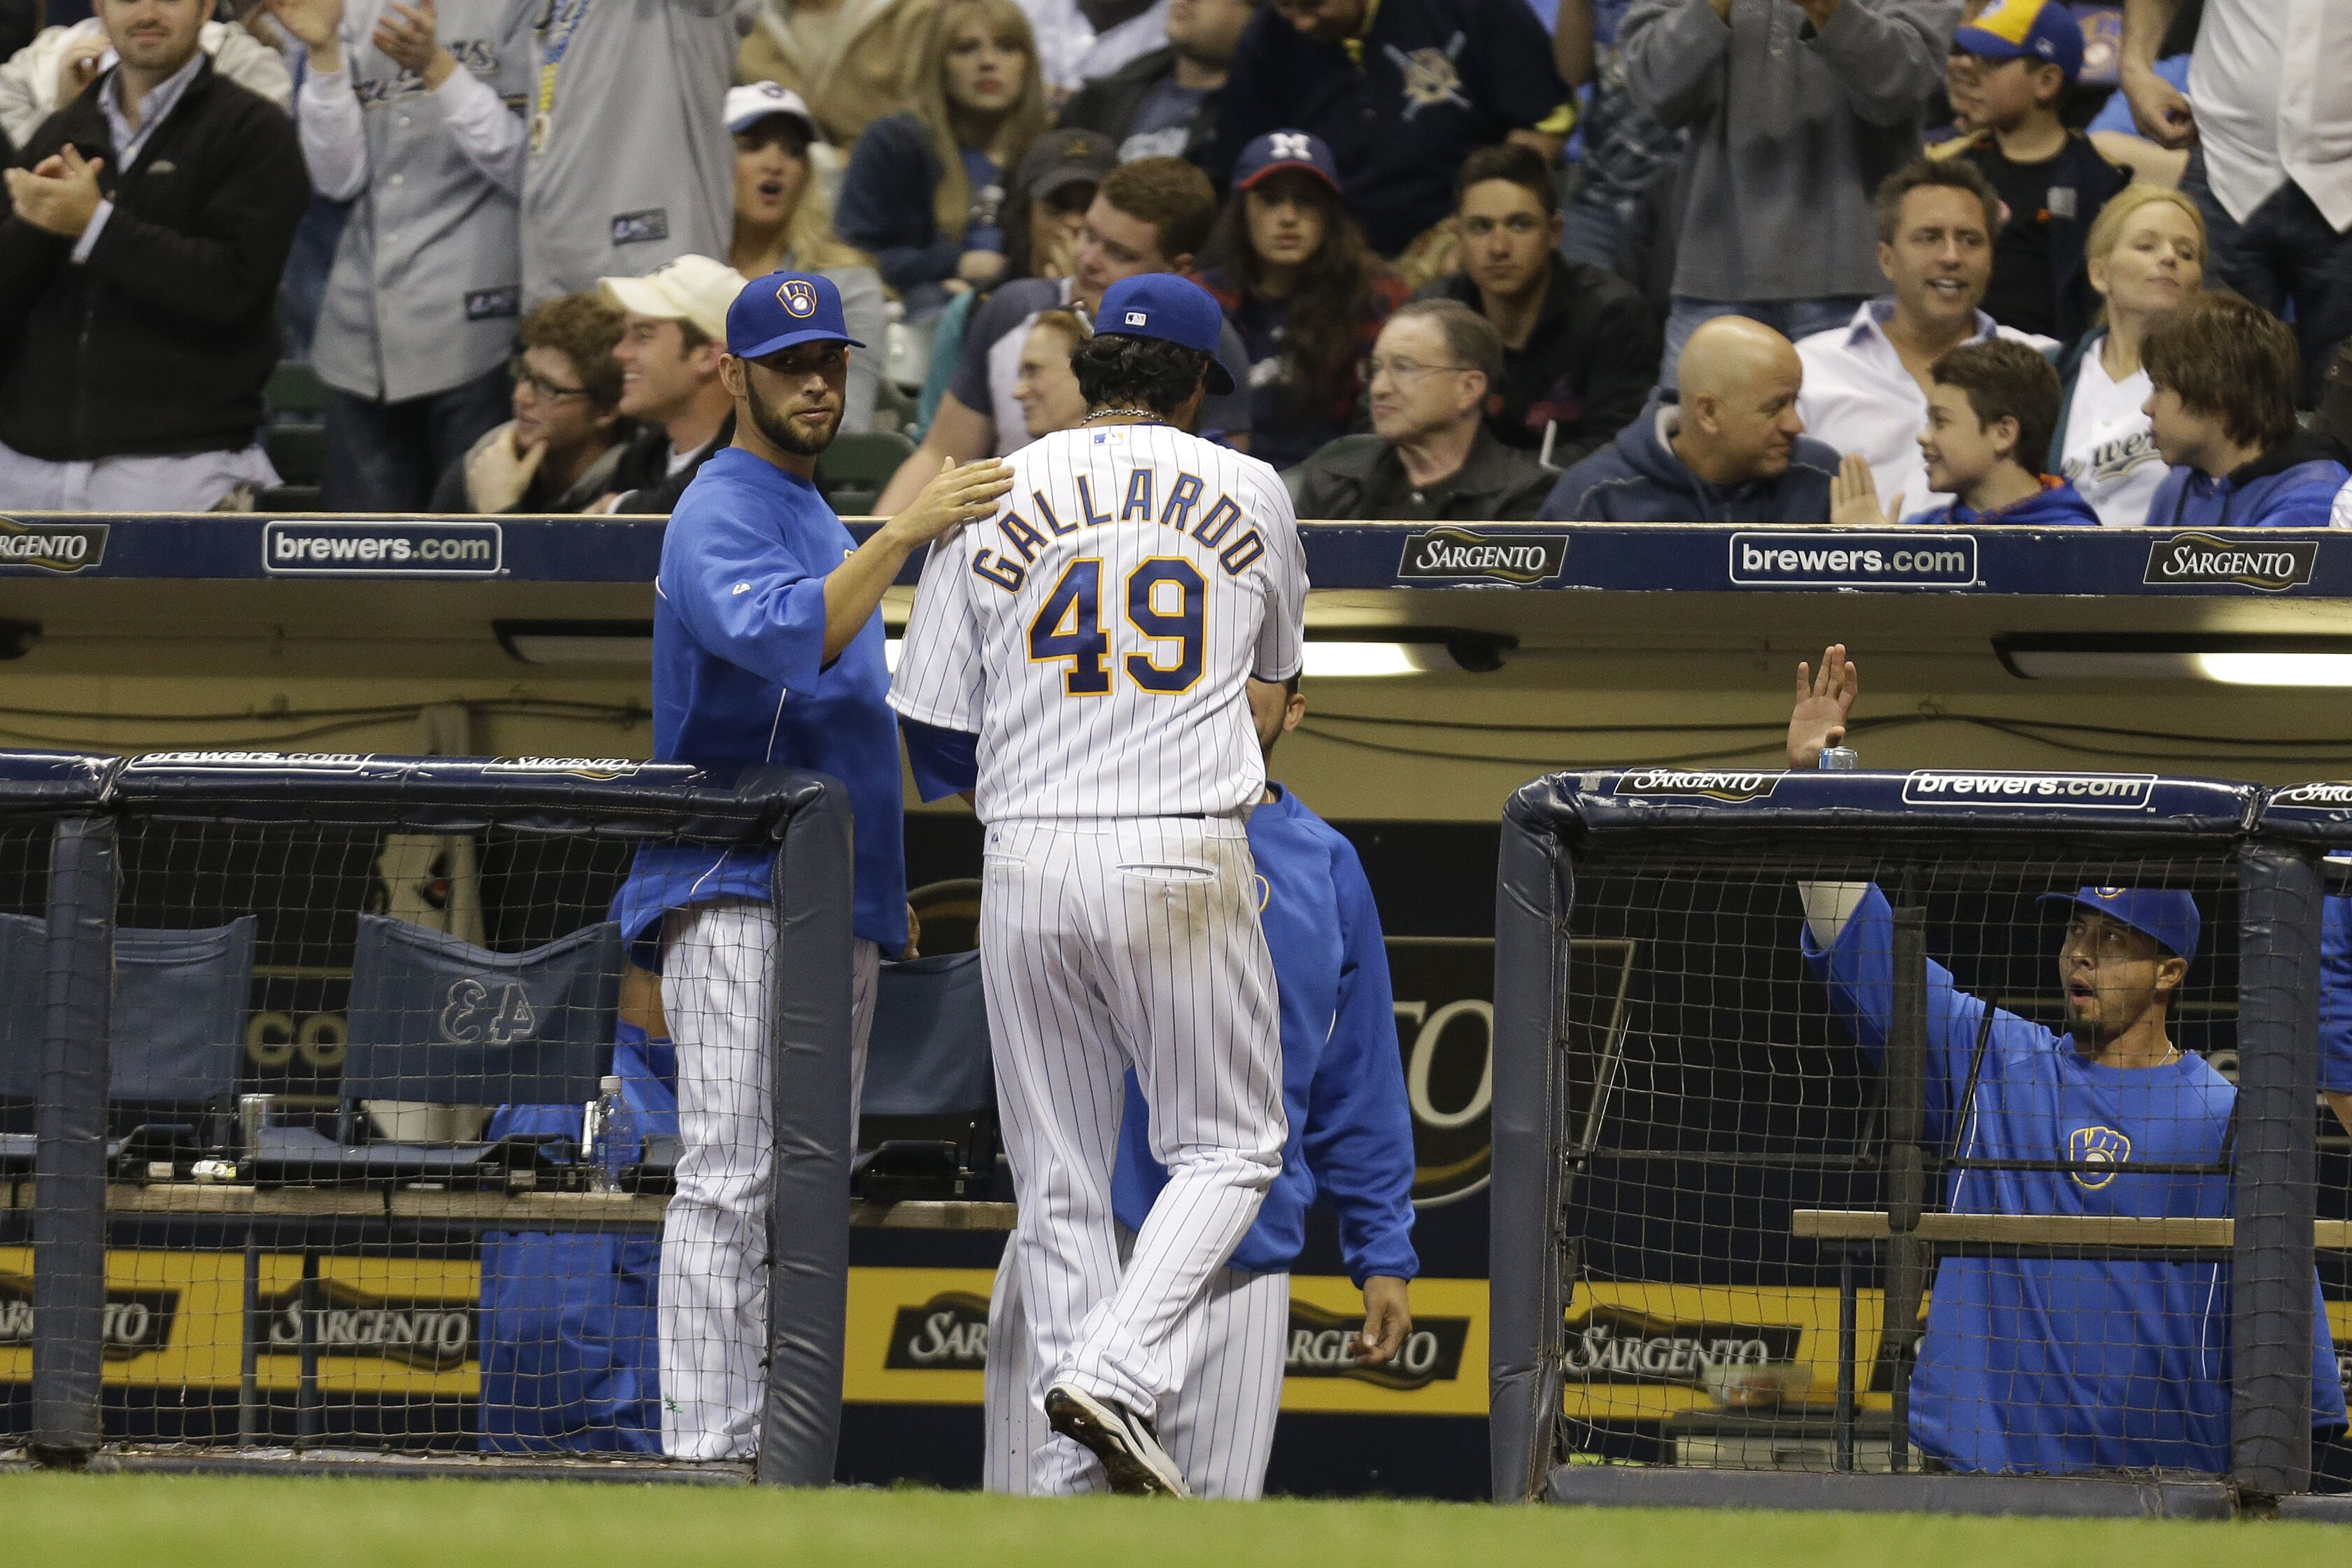 Milwaukee Brewers: Fans Want Craig Counsell Fired Amid Team Skid